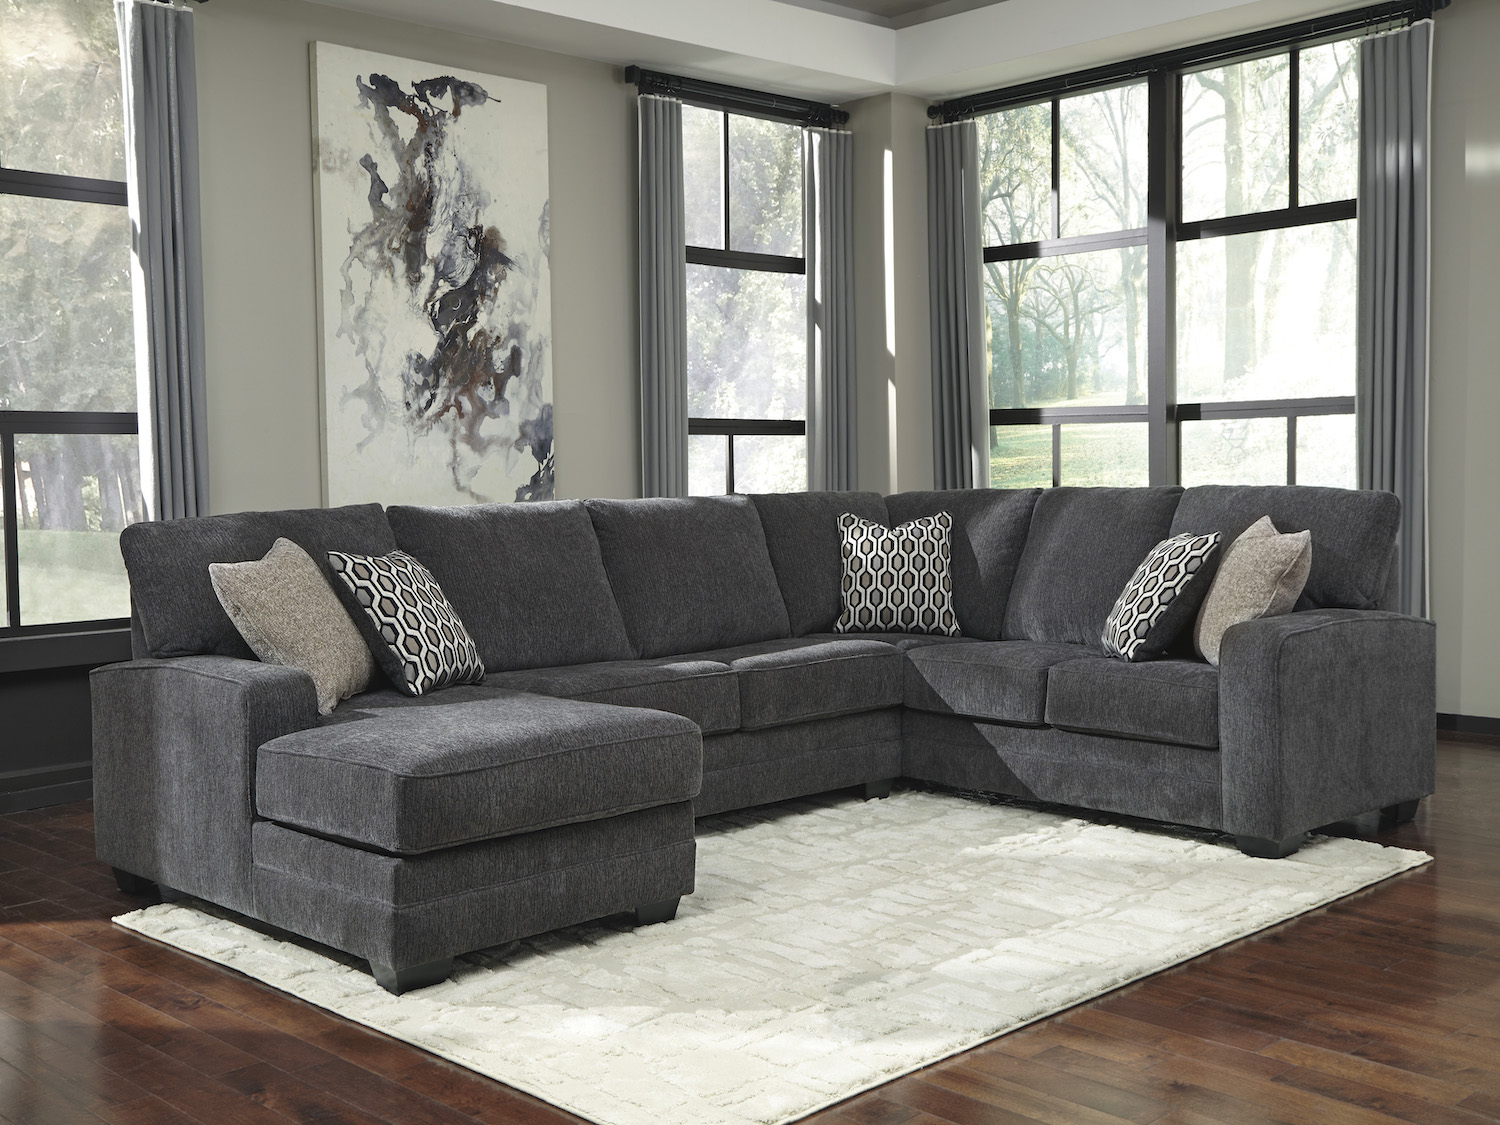 Tracling, 72600, Sectionals, Tracling from Ashley by Midha Furniture serving Brampton, Mississauga, Etobicoke, Toronto, Scraborough, Caledon, Cambridge, Oakville, Markham, Ajax, Pickering, Oshawa, Richmondhill, Kitchener, Hamilton, Cambridge, Waterloo and GTA area